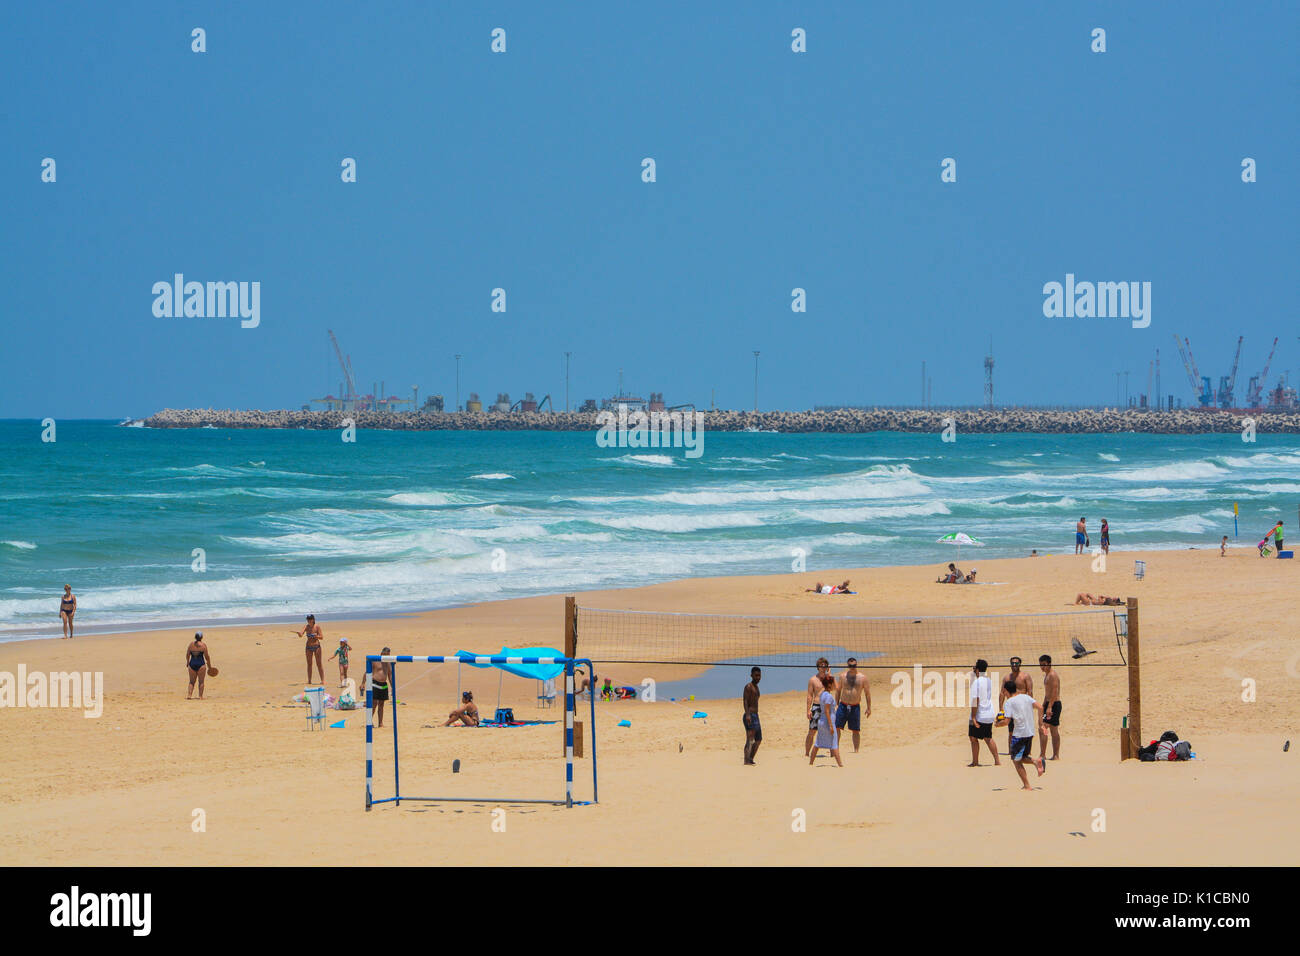 The Mediterranean beach of Ashkelon in Ashkelon, Israel